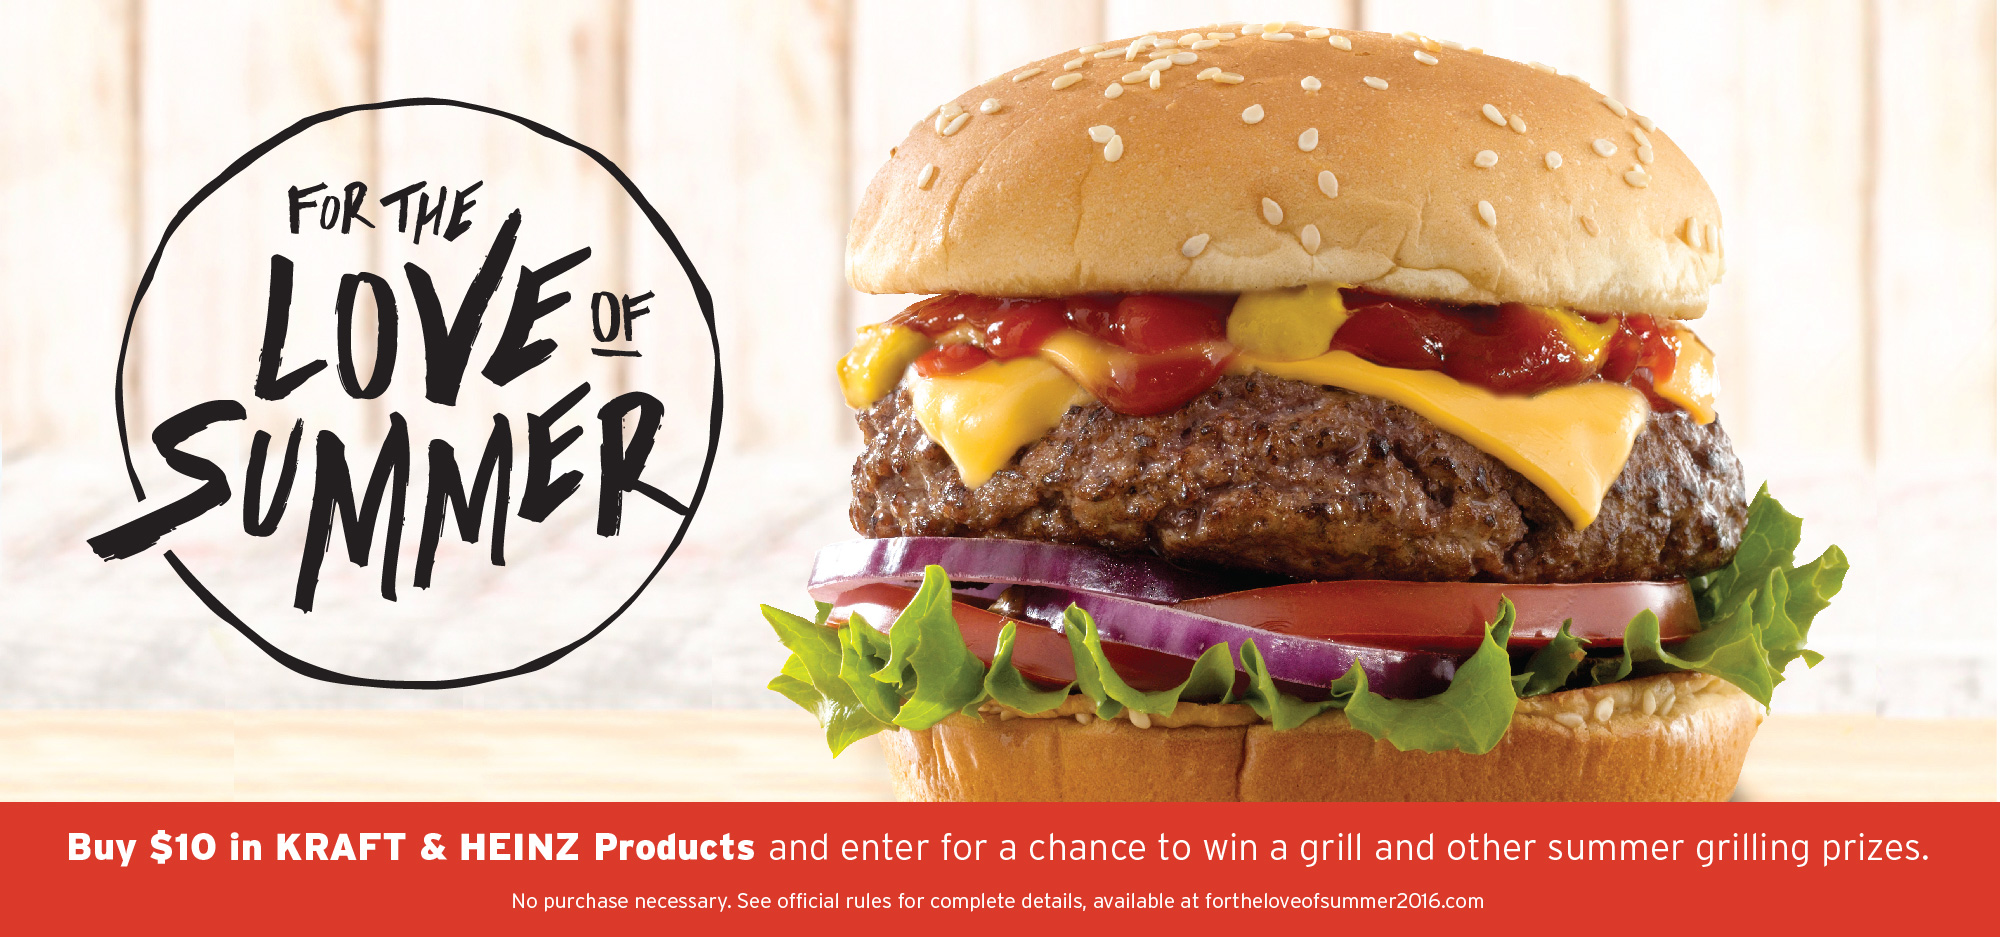 Enter to win a new grill